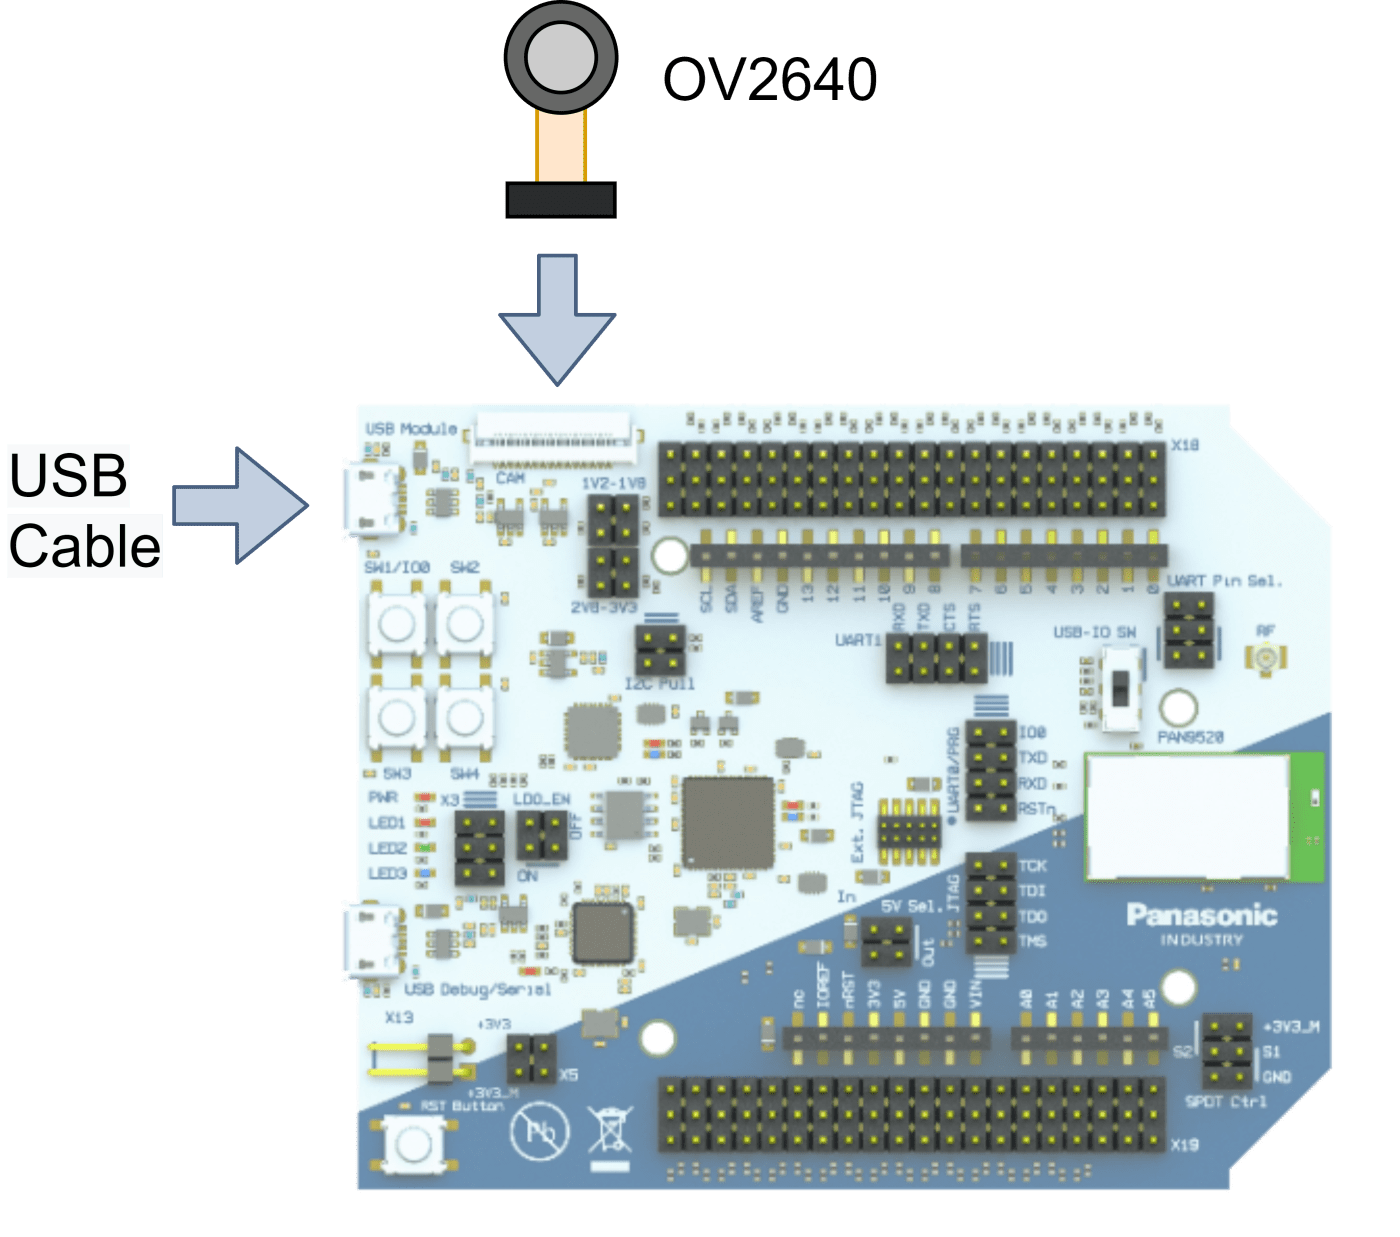 PAN9520 ETU contains a 24-pin FPC connector for operating a camera module